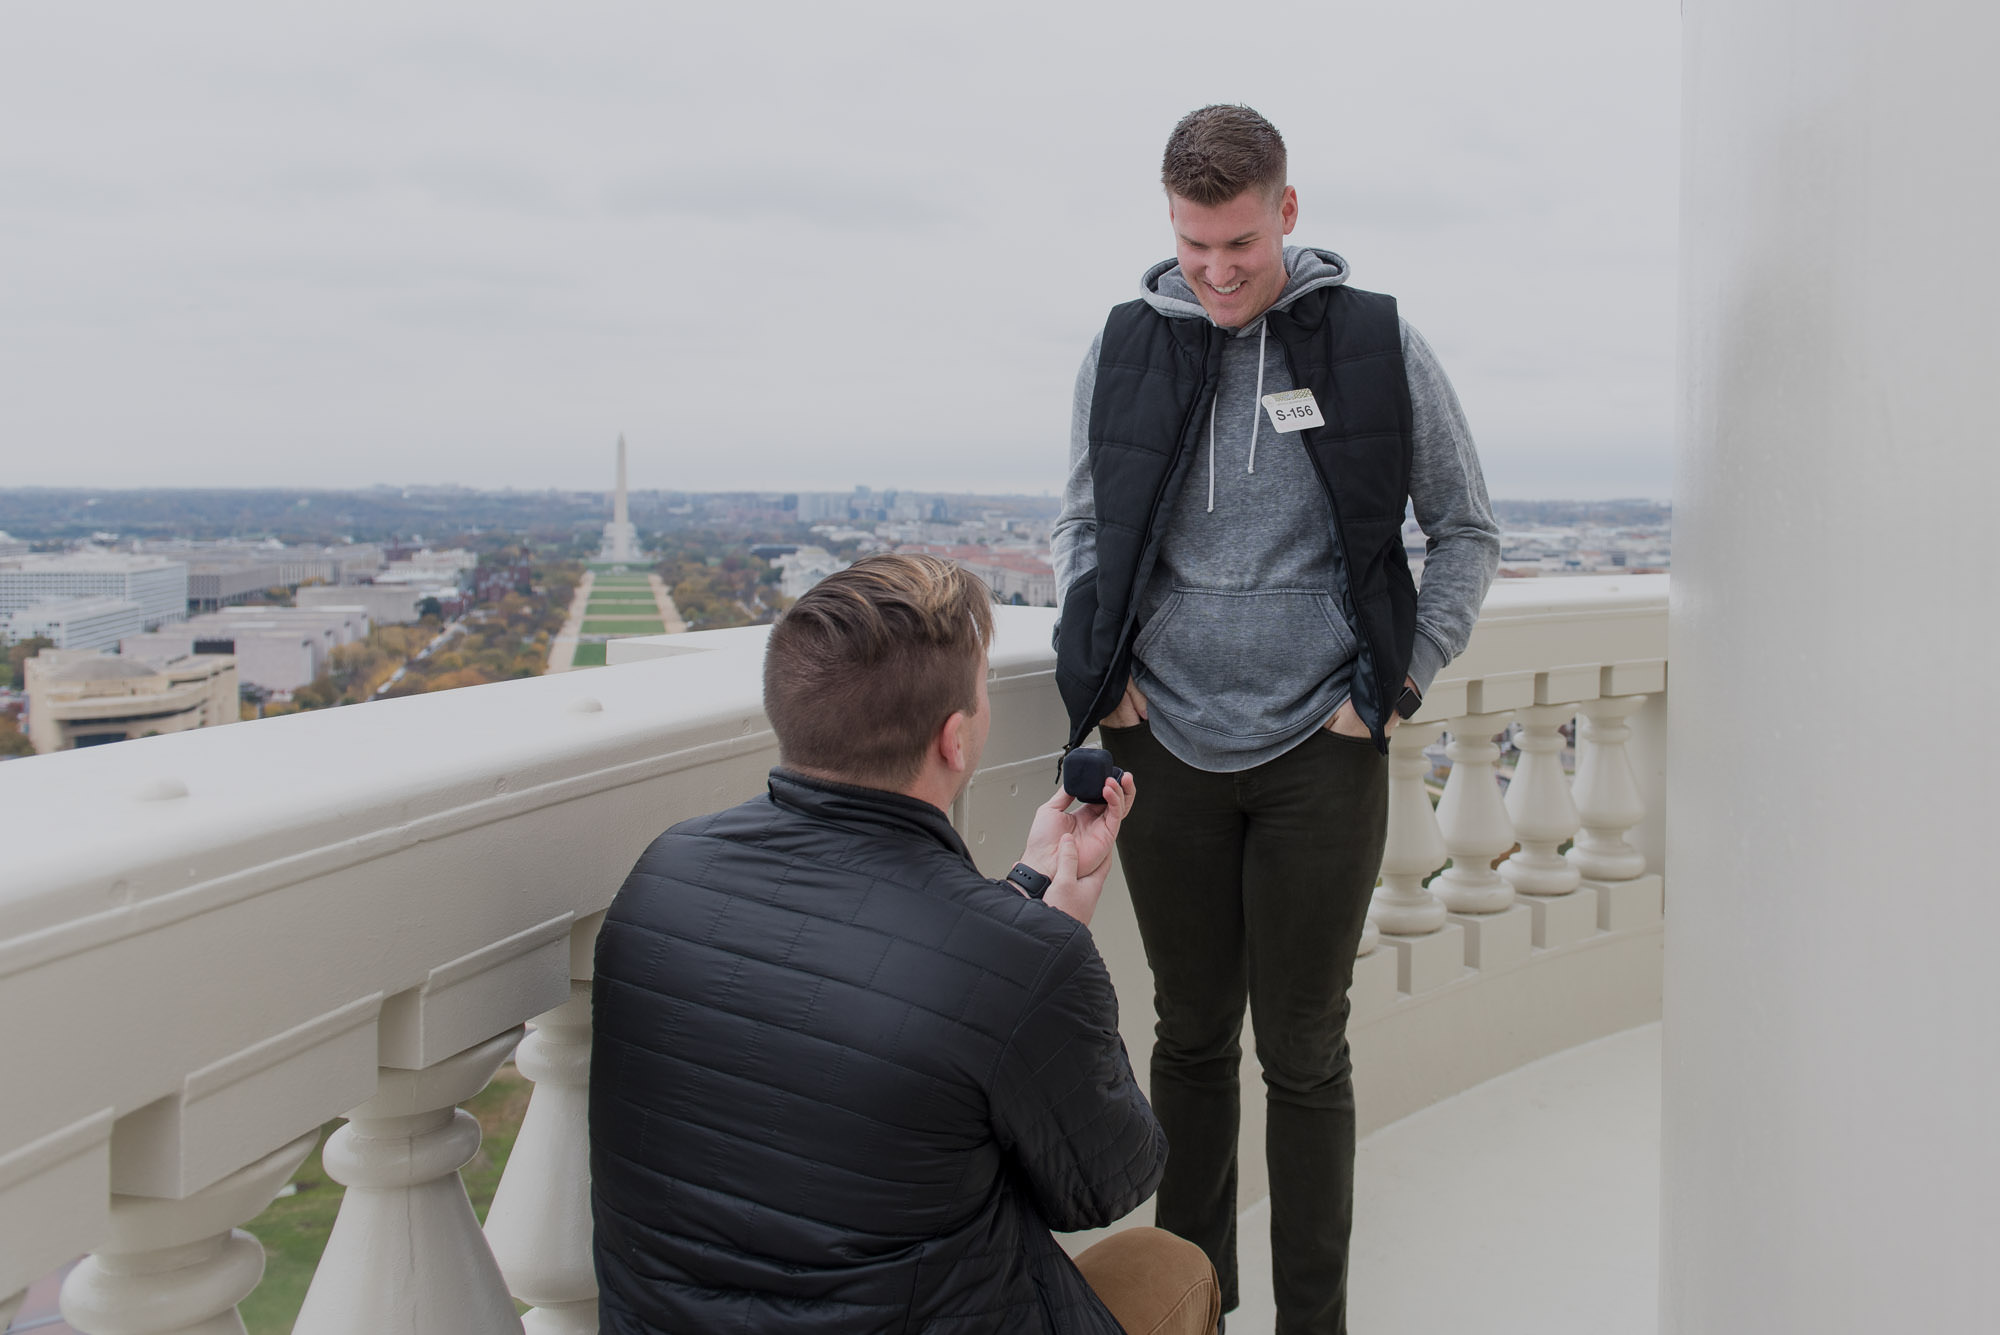 Justin and Flint - LGBT Gay Proposal at the United States Capitol